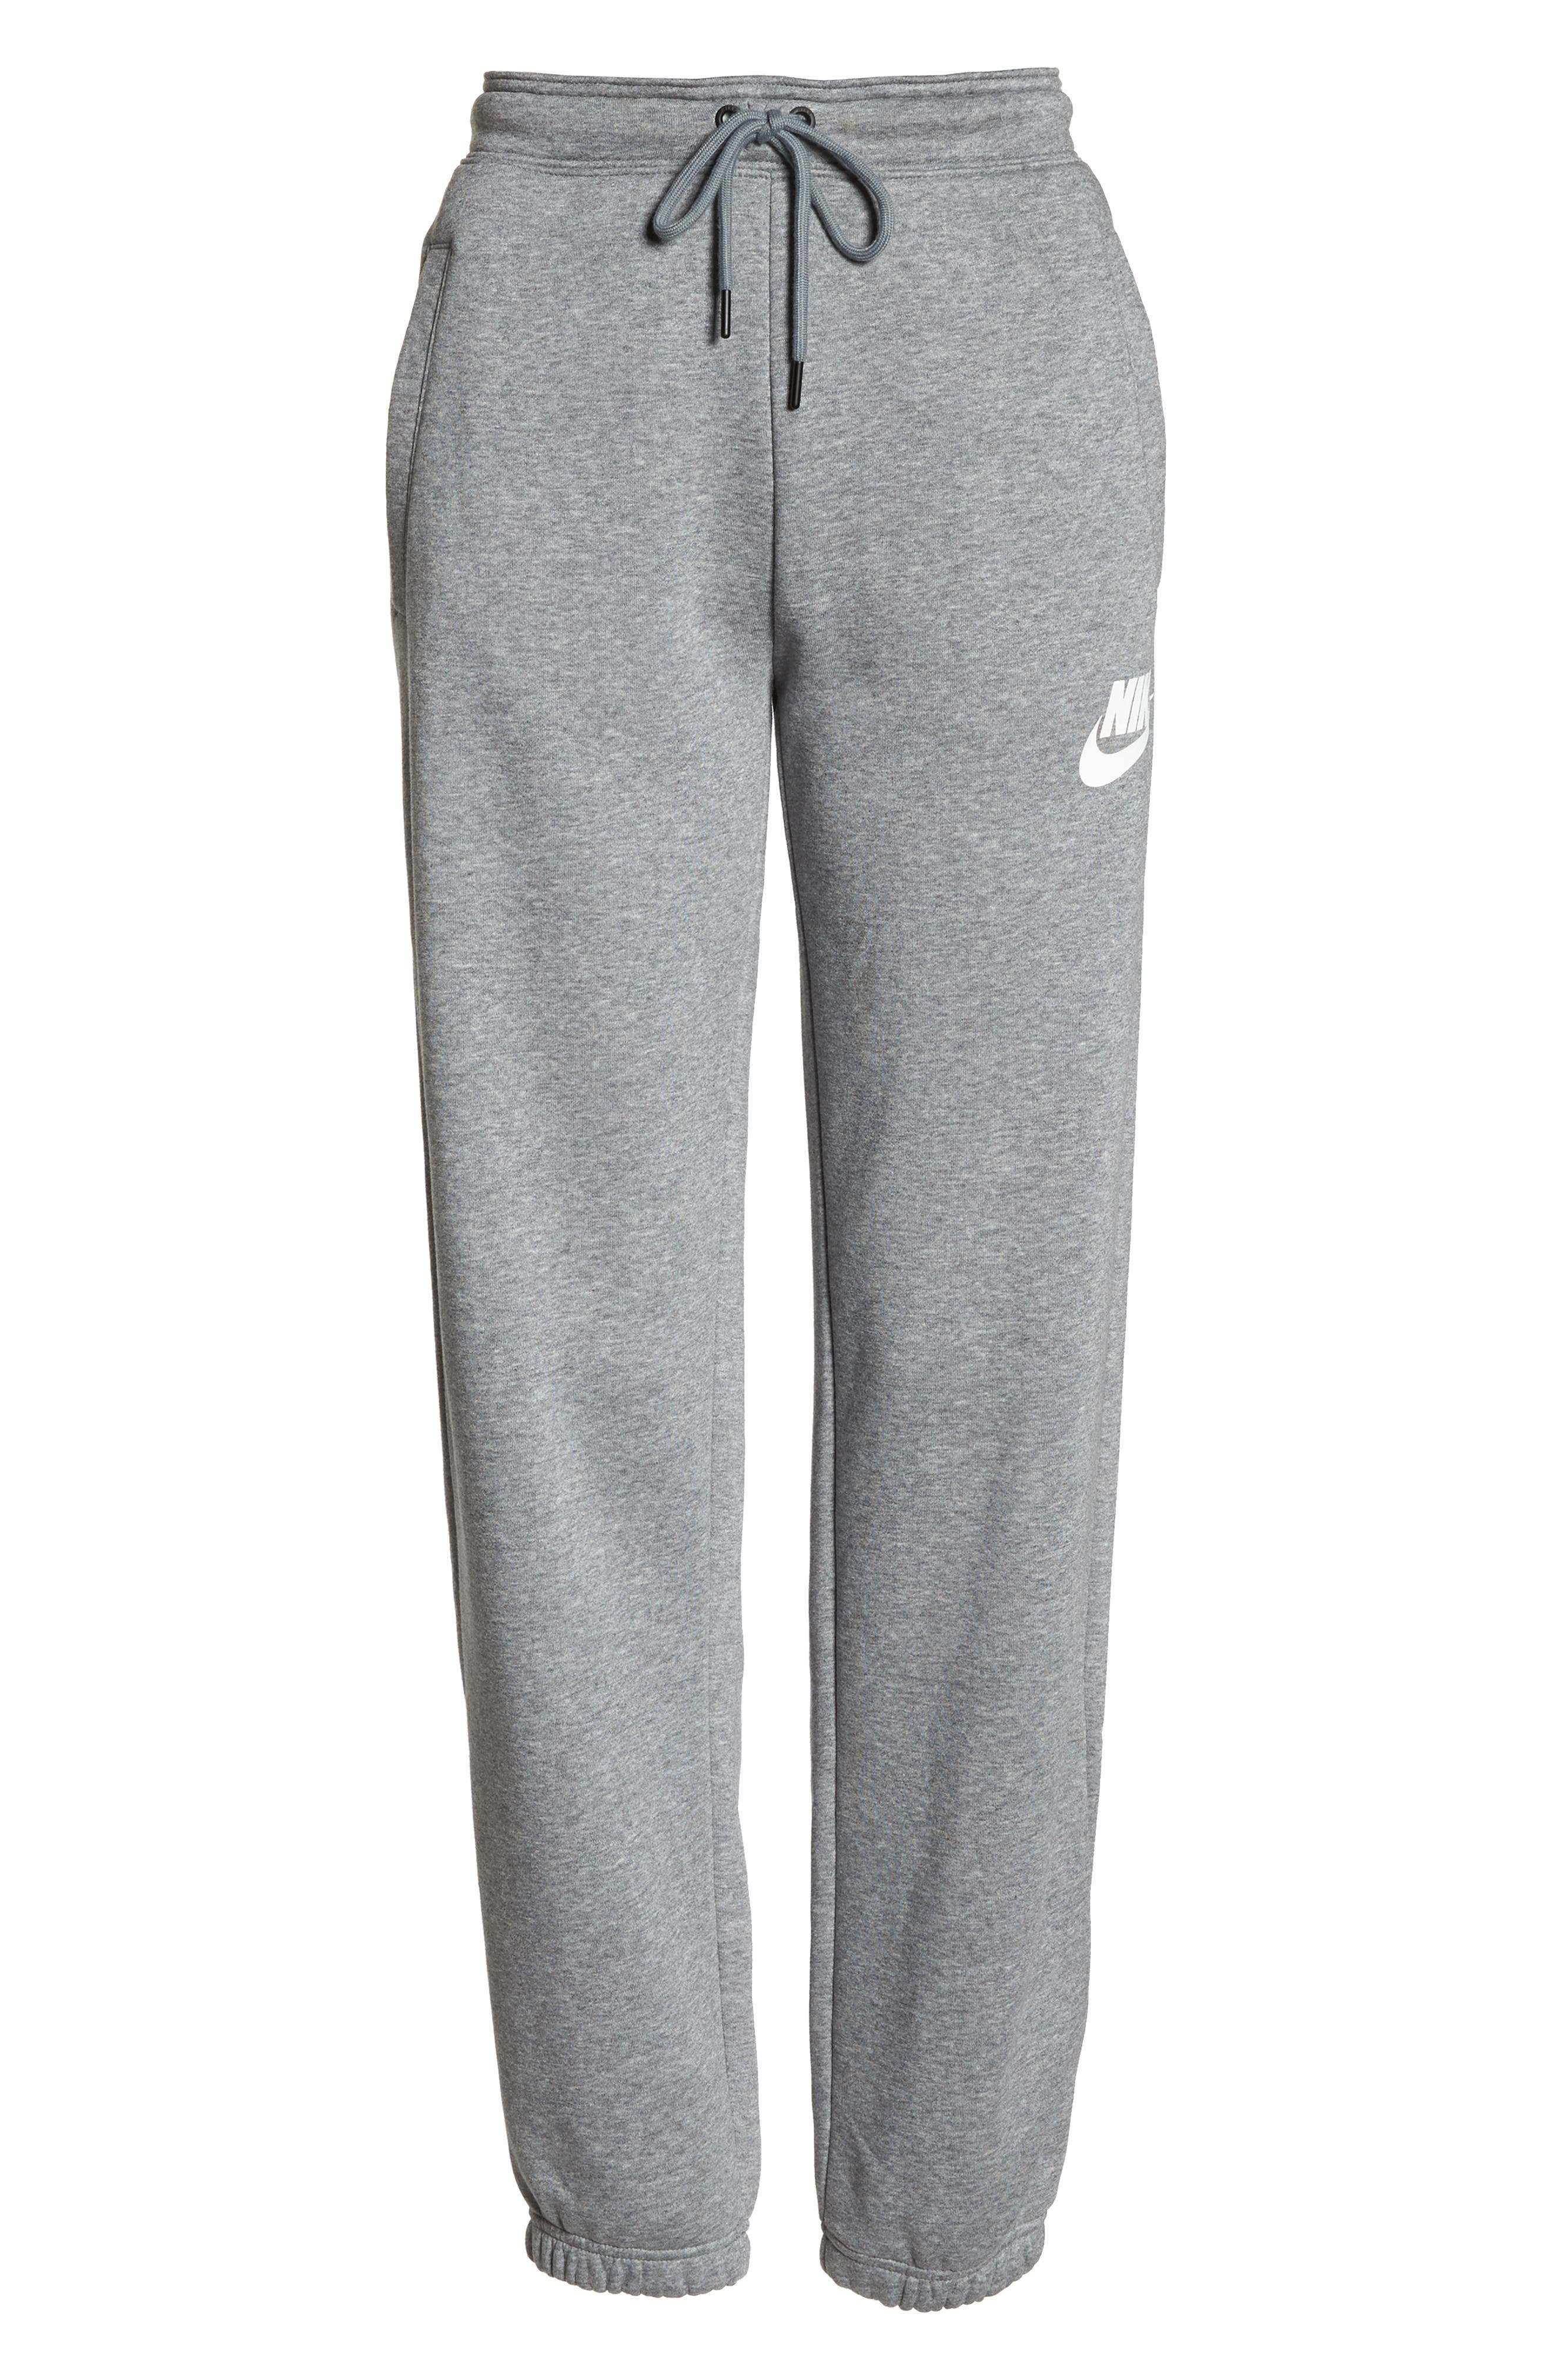 NSW Rally Pants,                             Alternate thumbnail 7, color,                             CARBON HEATHER/ COOL GREY